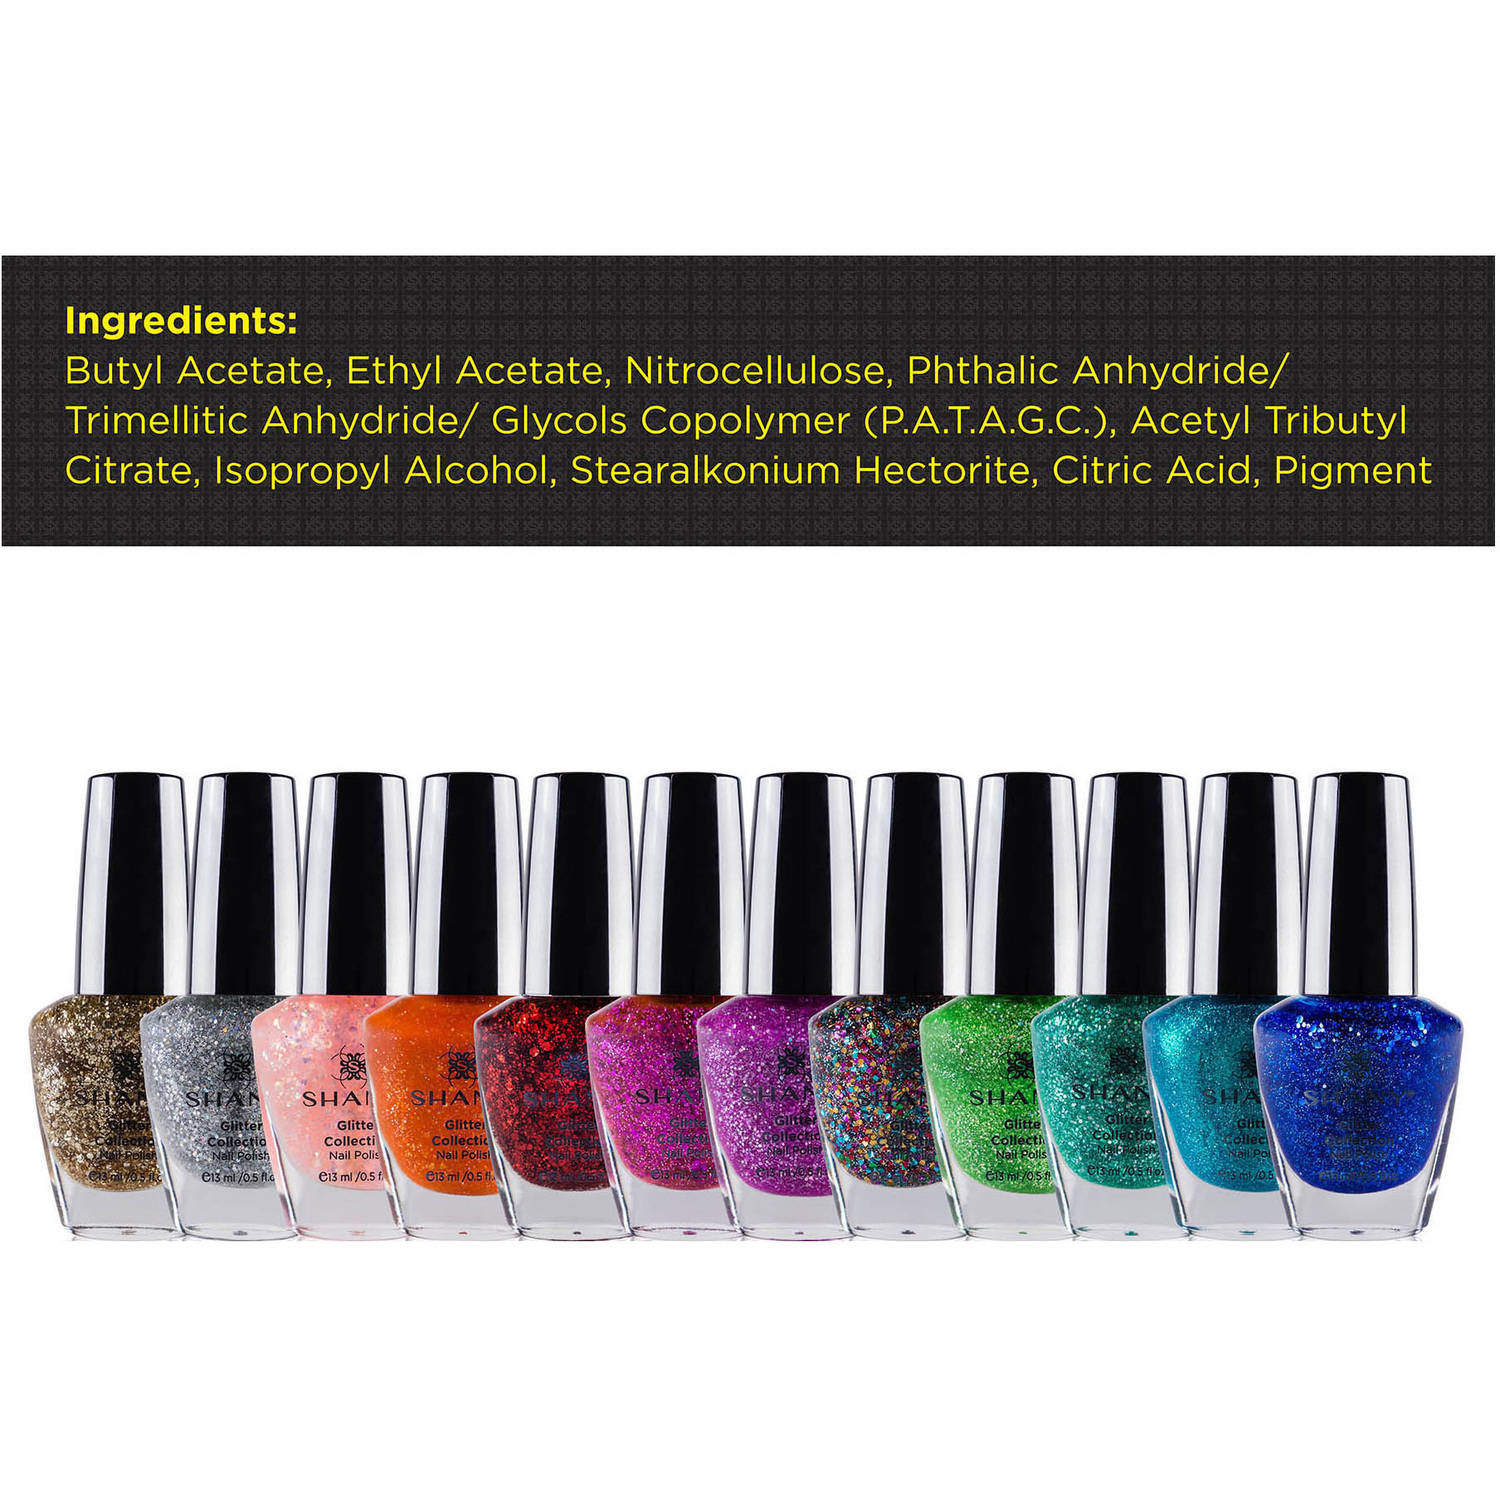 SHANY Glitter Collection Nail Polish Set, 12 count - Walmart.com